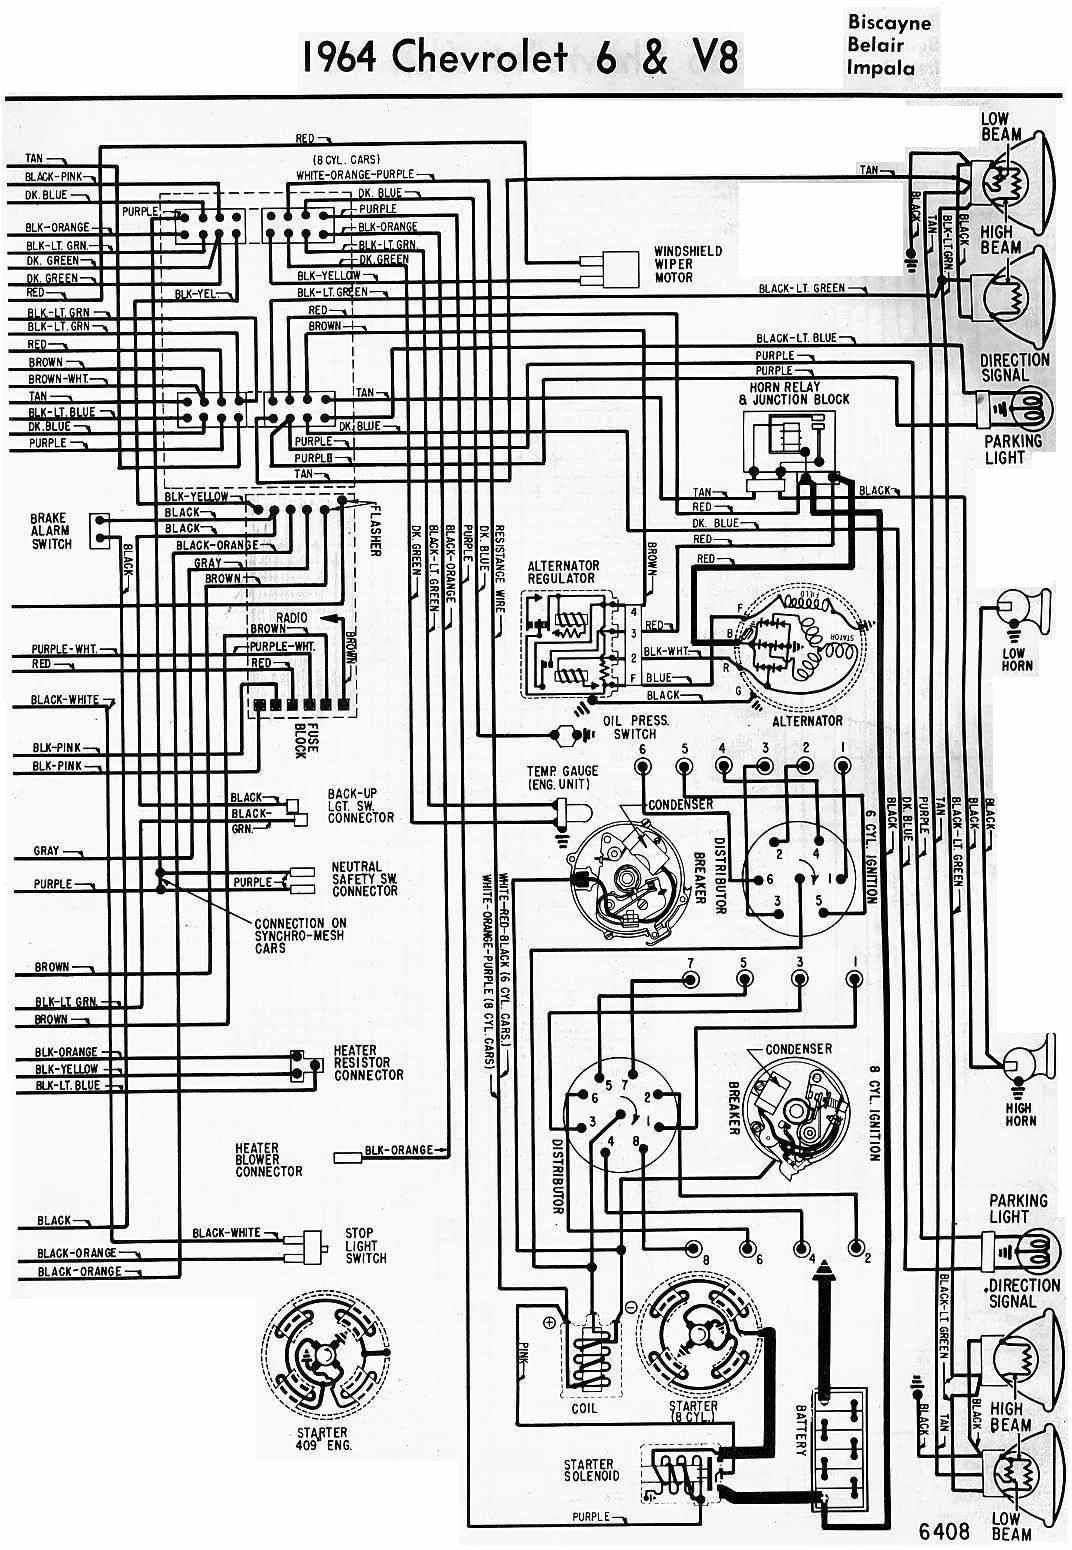 Chevy Horn Wiring Diagram Libraries 1972 Chevelle Relay 1970 Schematics1964 Chevrolet Diagrams Explained